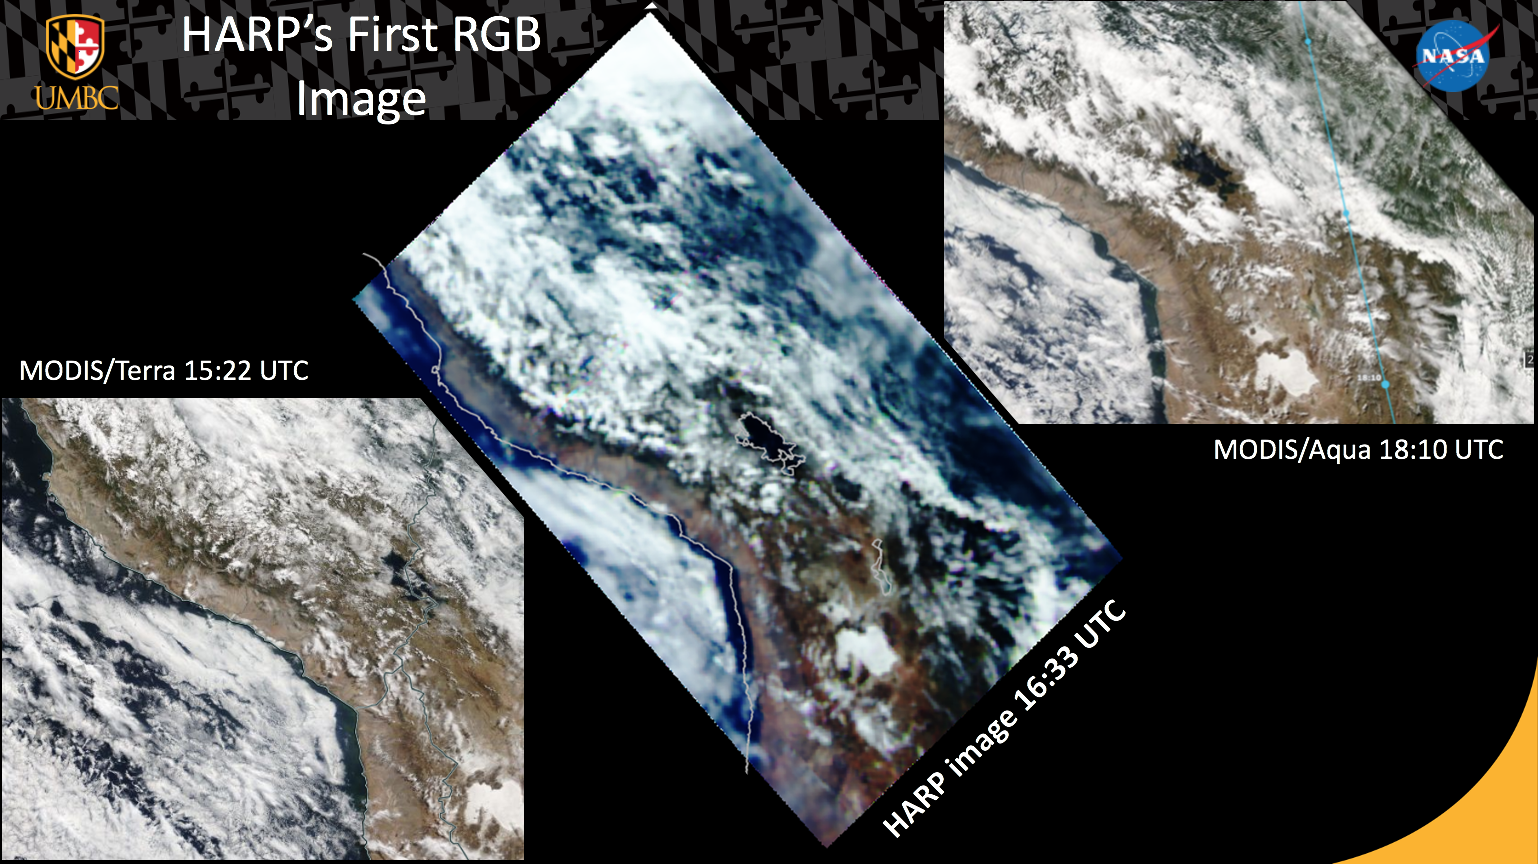 New HARP CubeSat Imagery over South America